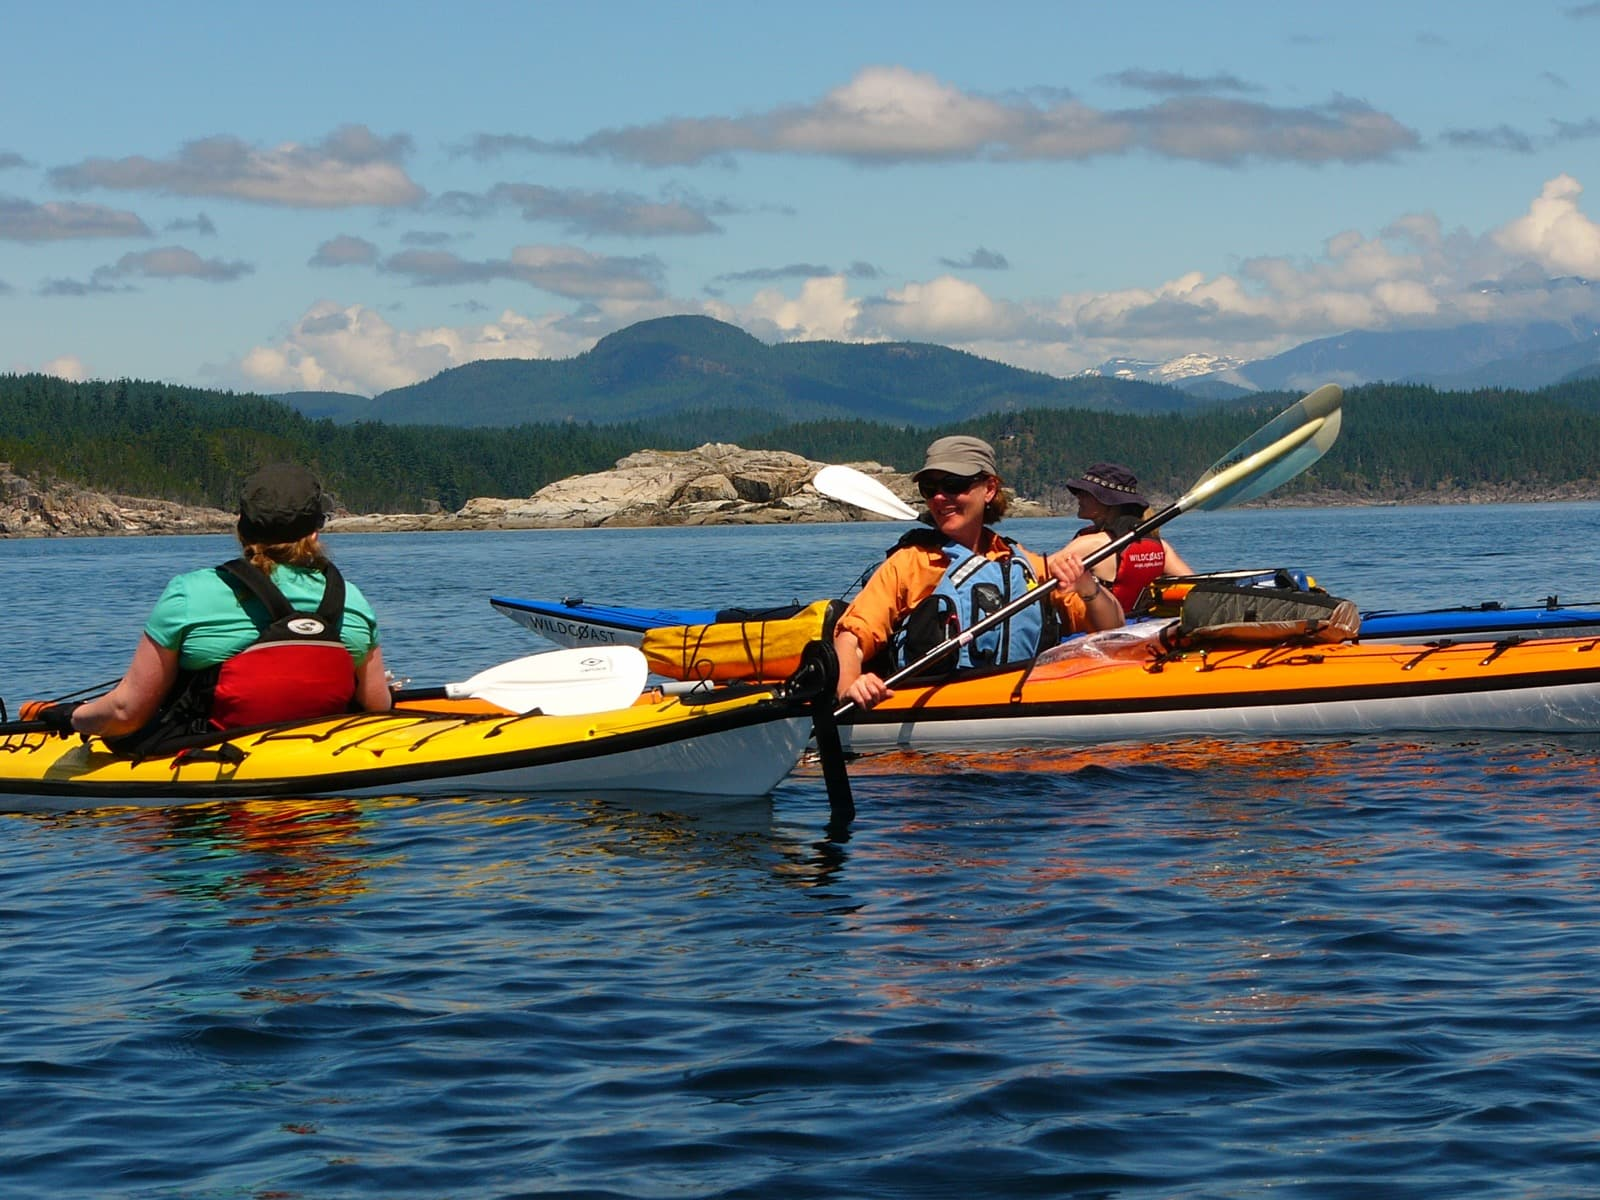 Three kayakers talking to each other in calm water